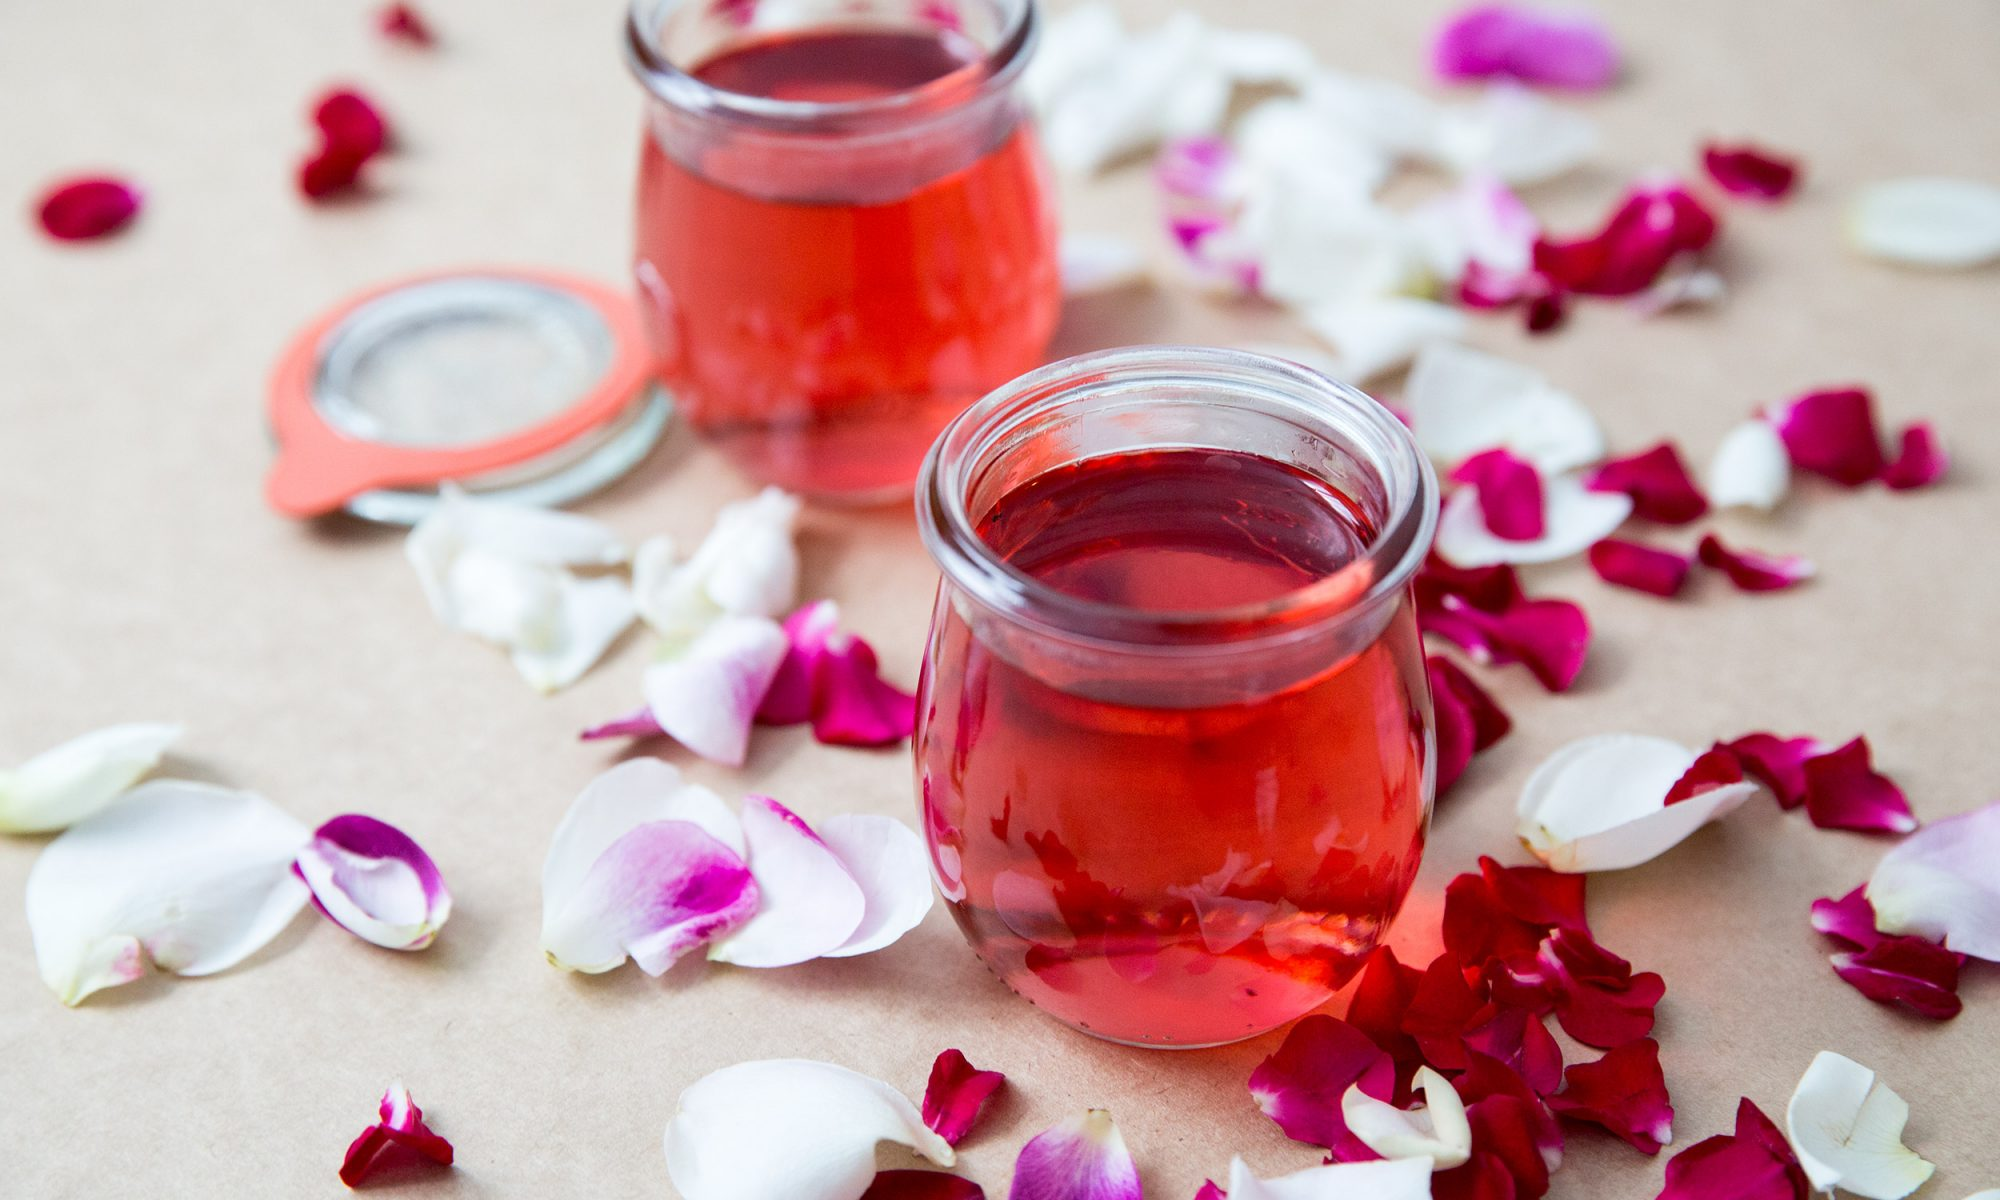 EC: How to Make Homemade Rose Simple Syrup